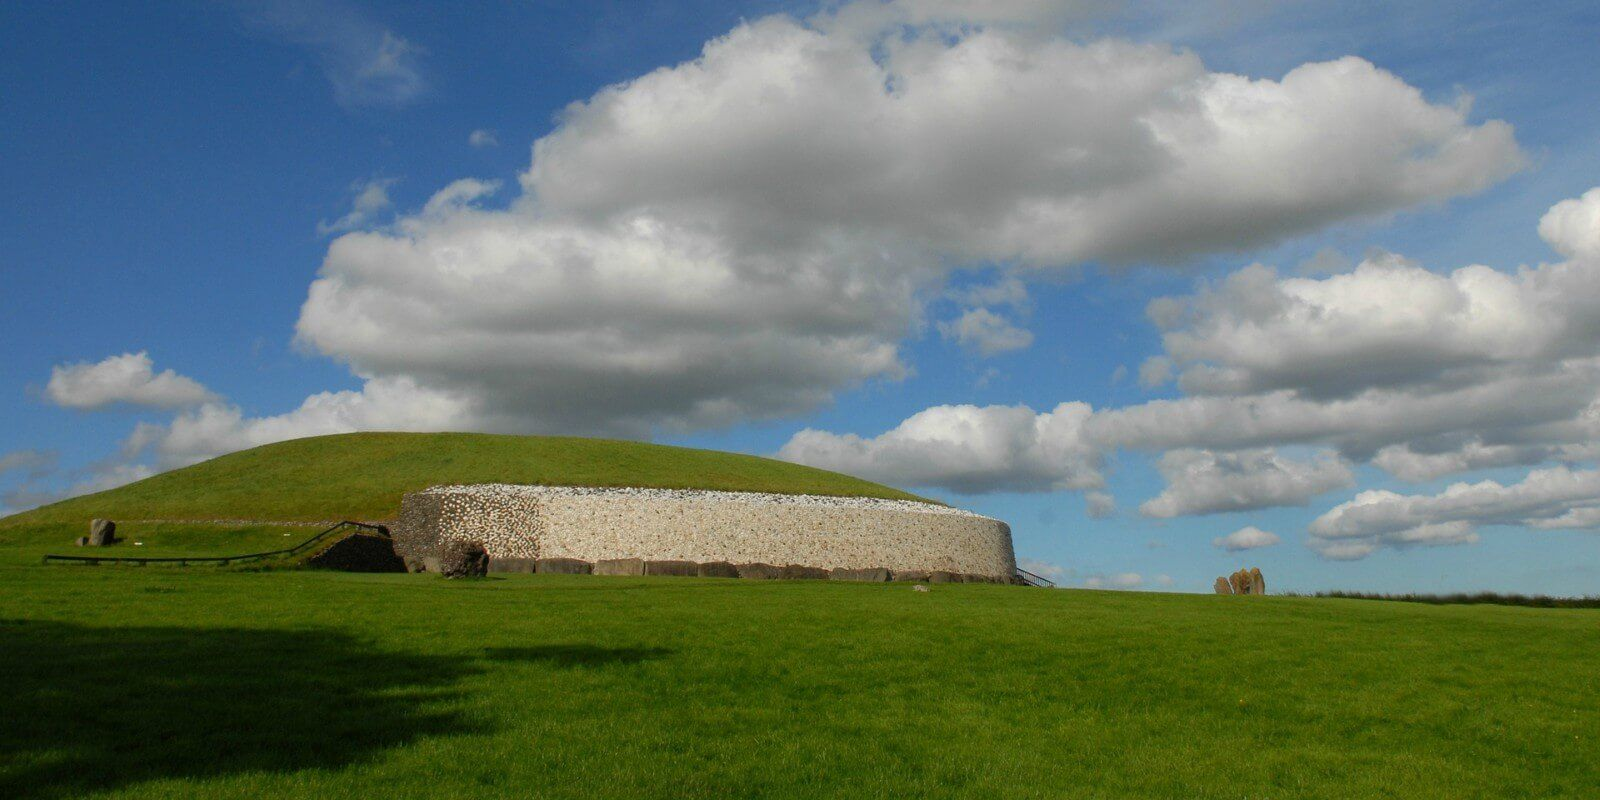 Newgrange in the Boyne Valley is a 5000 year old Passage Tomb famous for the Winter Solstice illumination which lights up the passage and chamber at sunrise